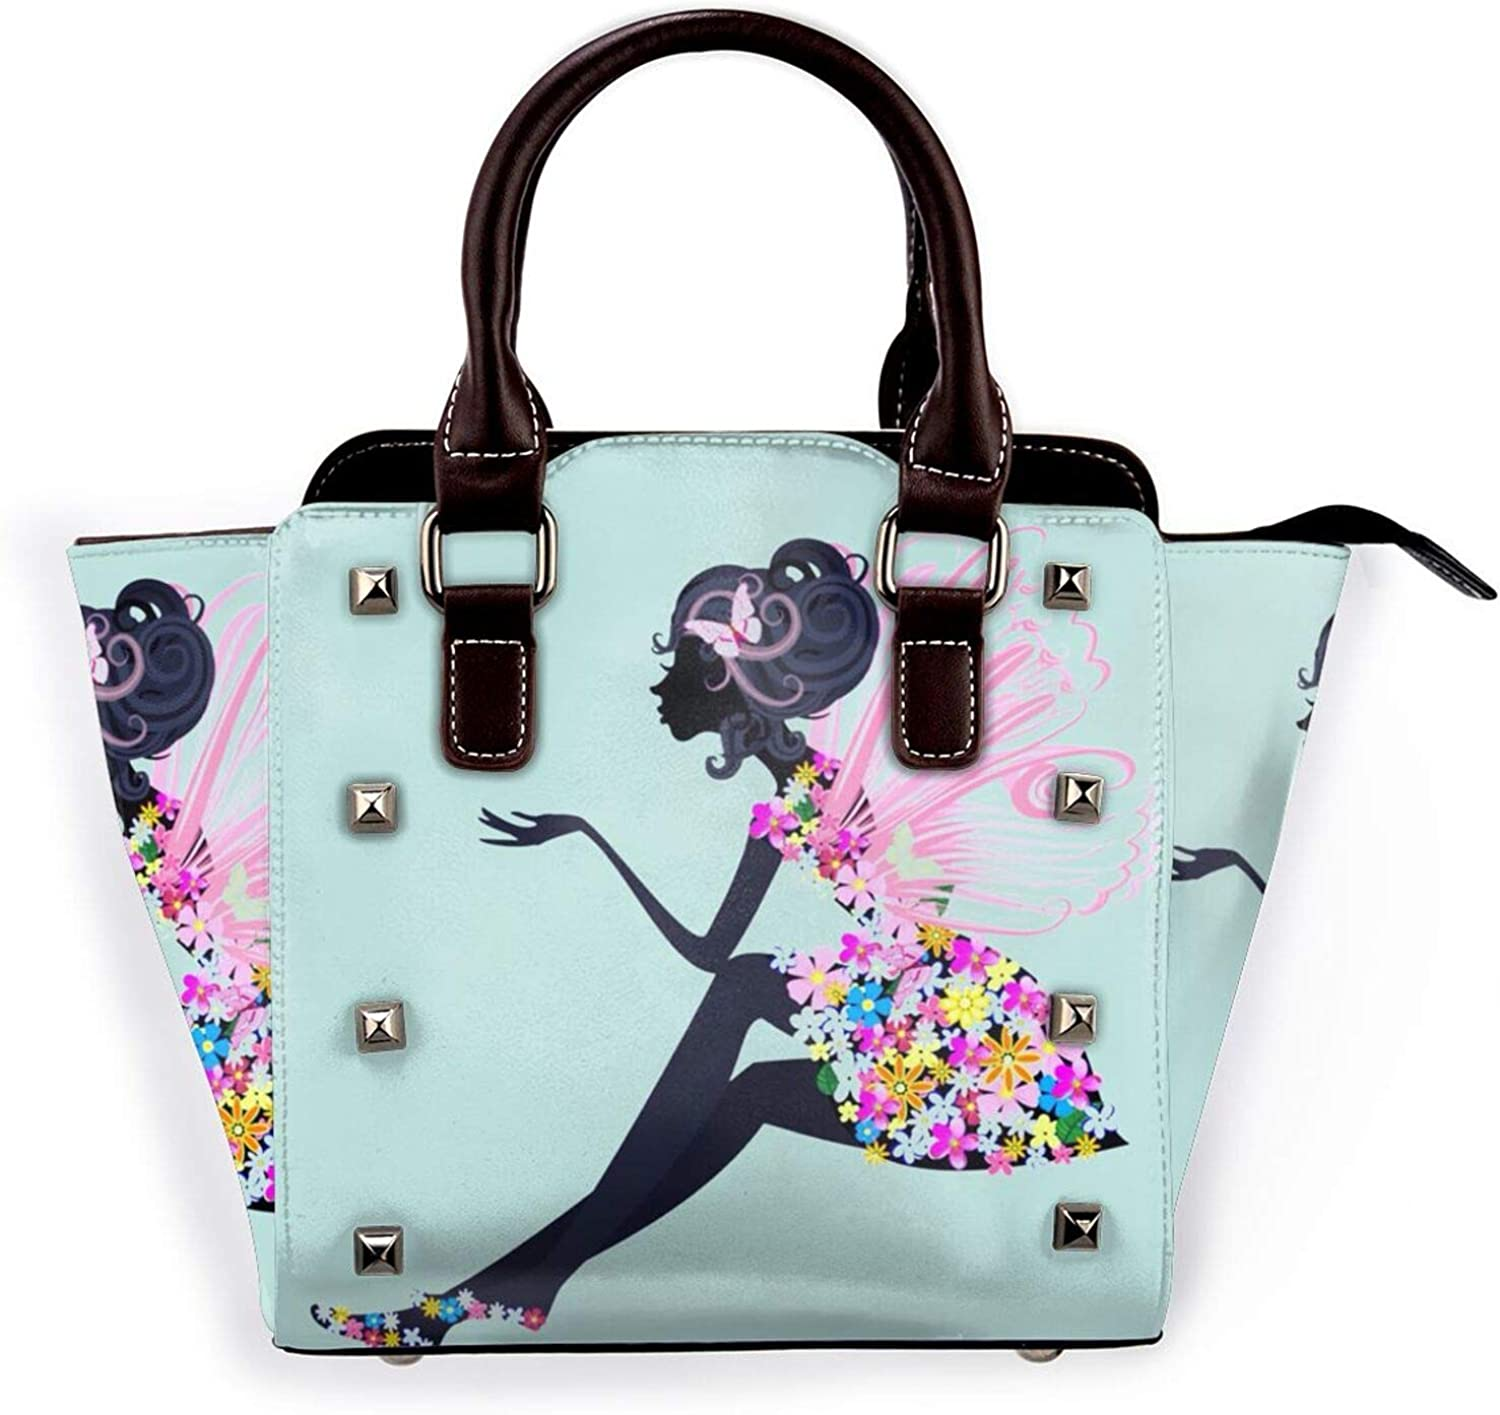 Leather Rivet Shoulder Bag In New products world's highest quality popular A Sunflow Be Full Of Tucson Mall Roses World